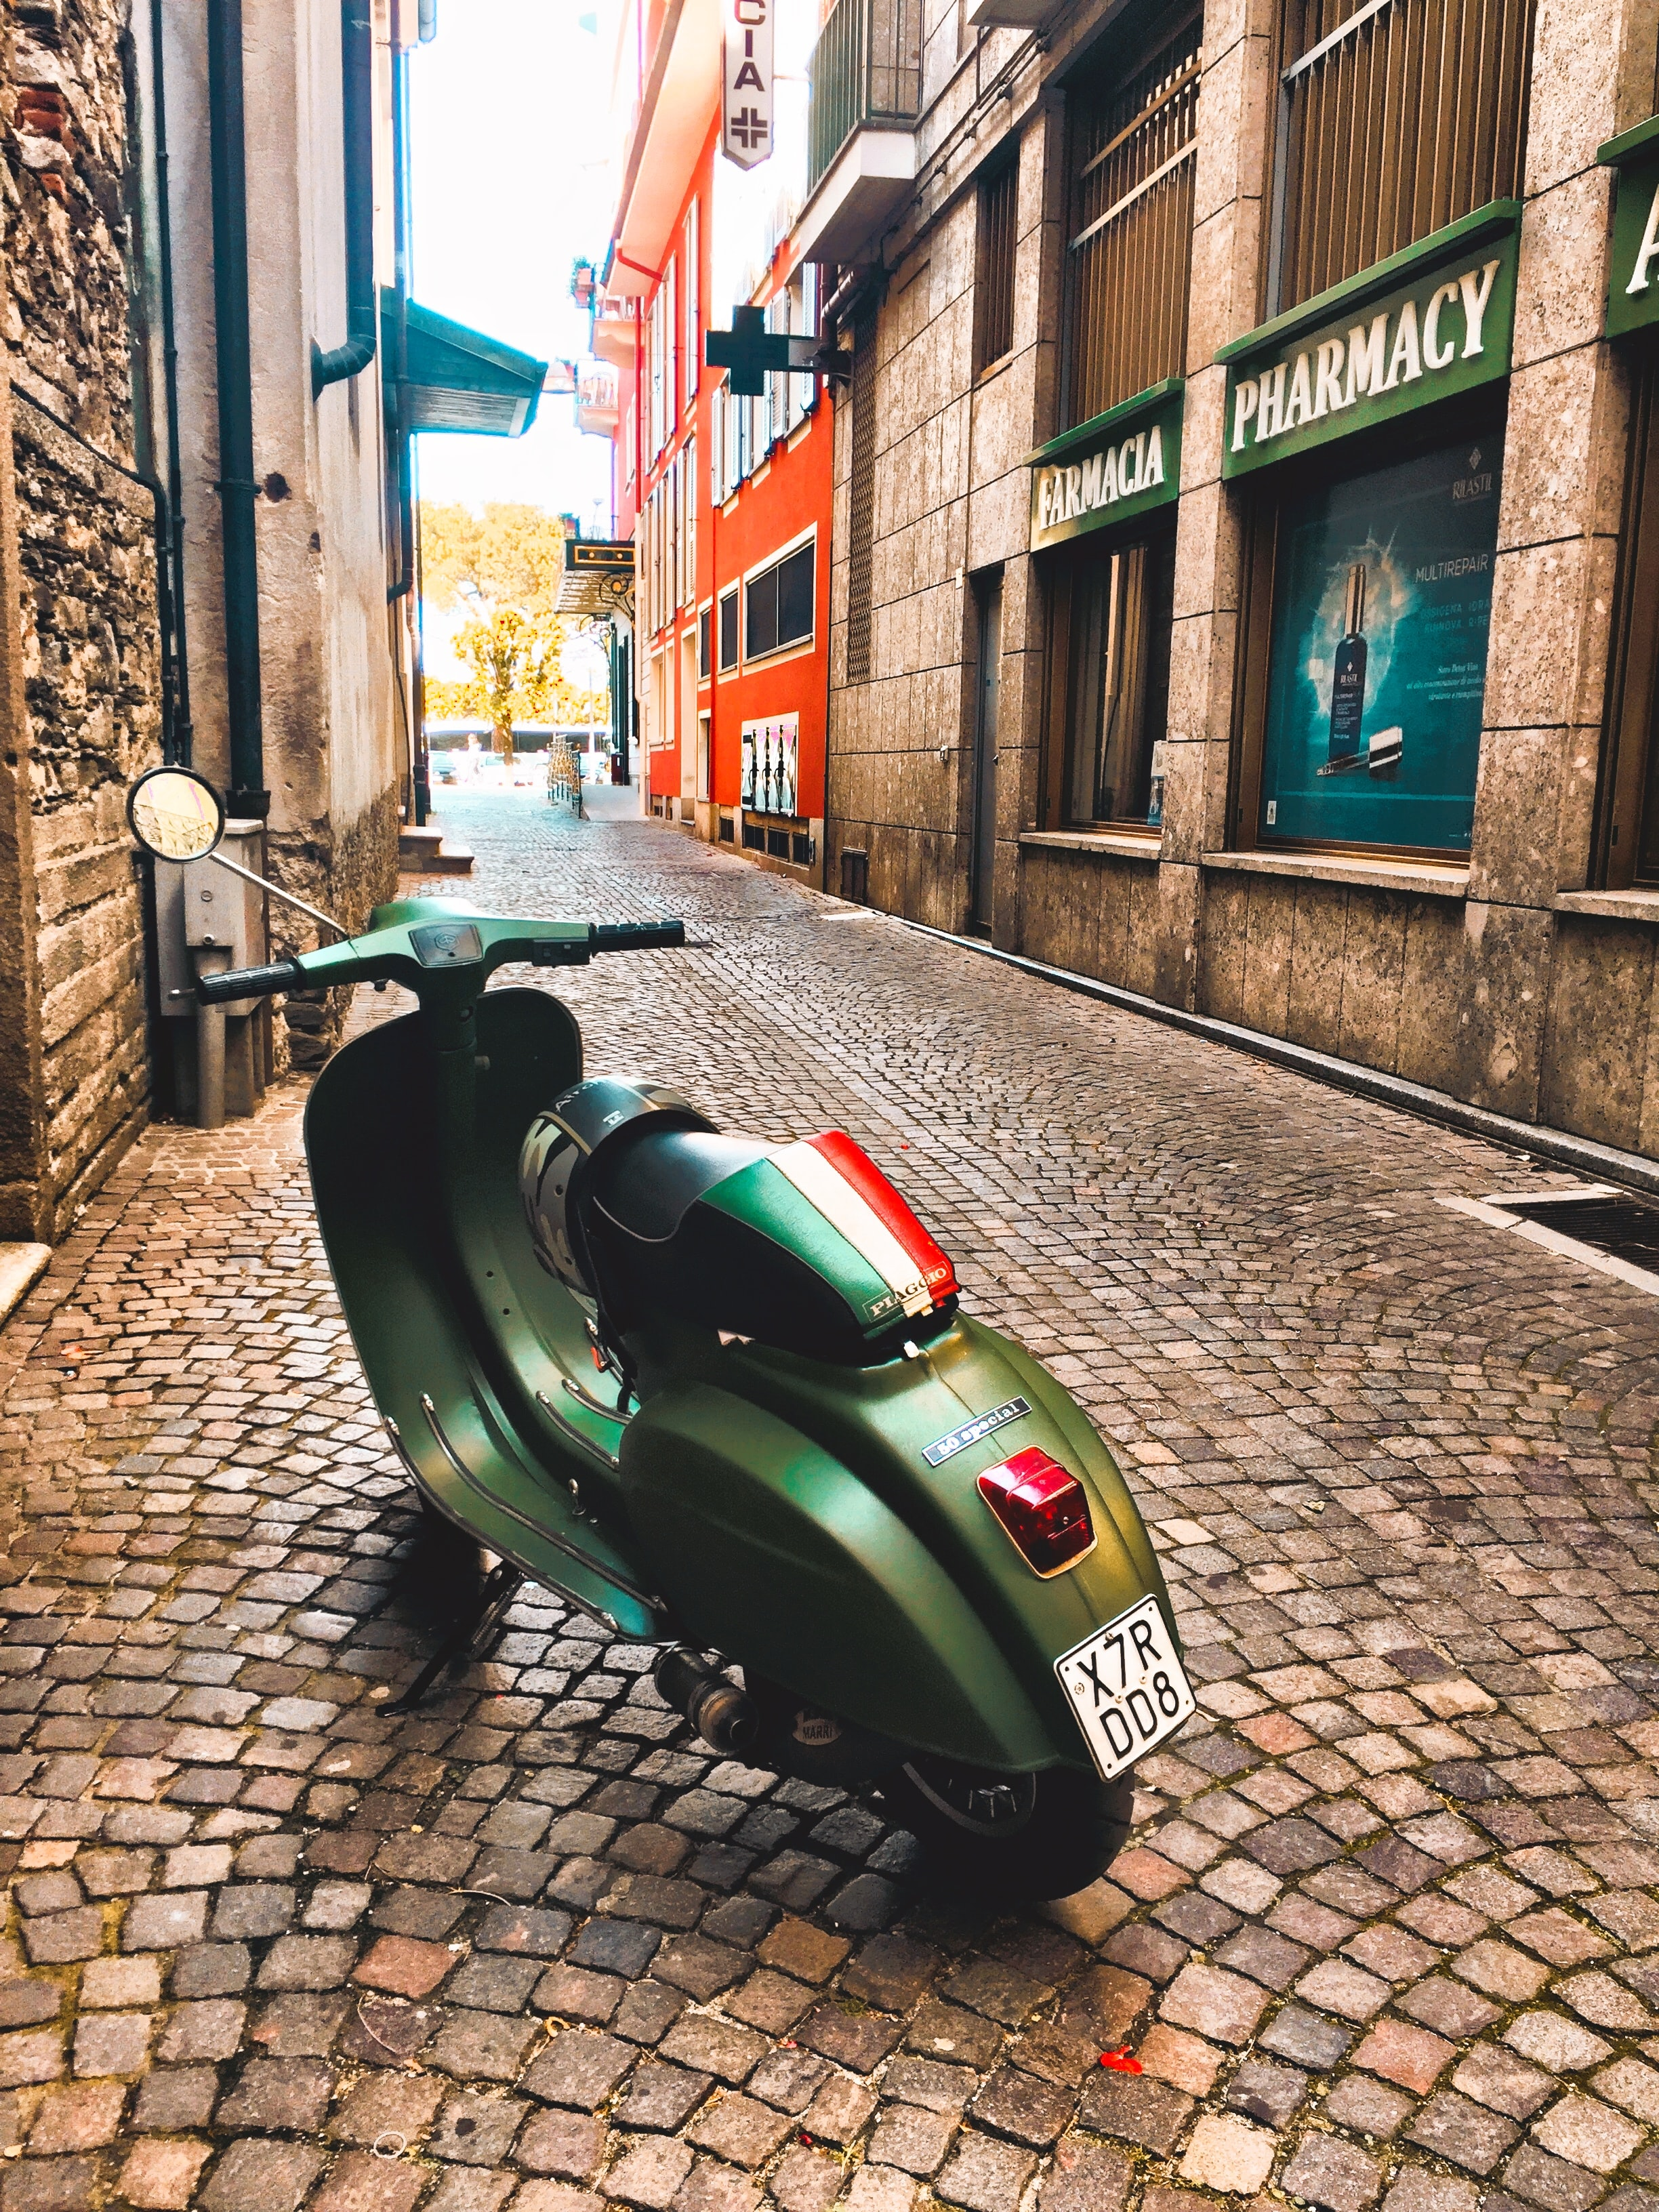 How I learned Vespa by thinking in Solr